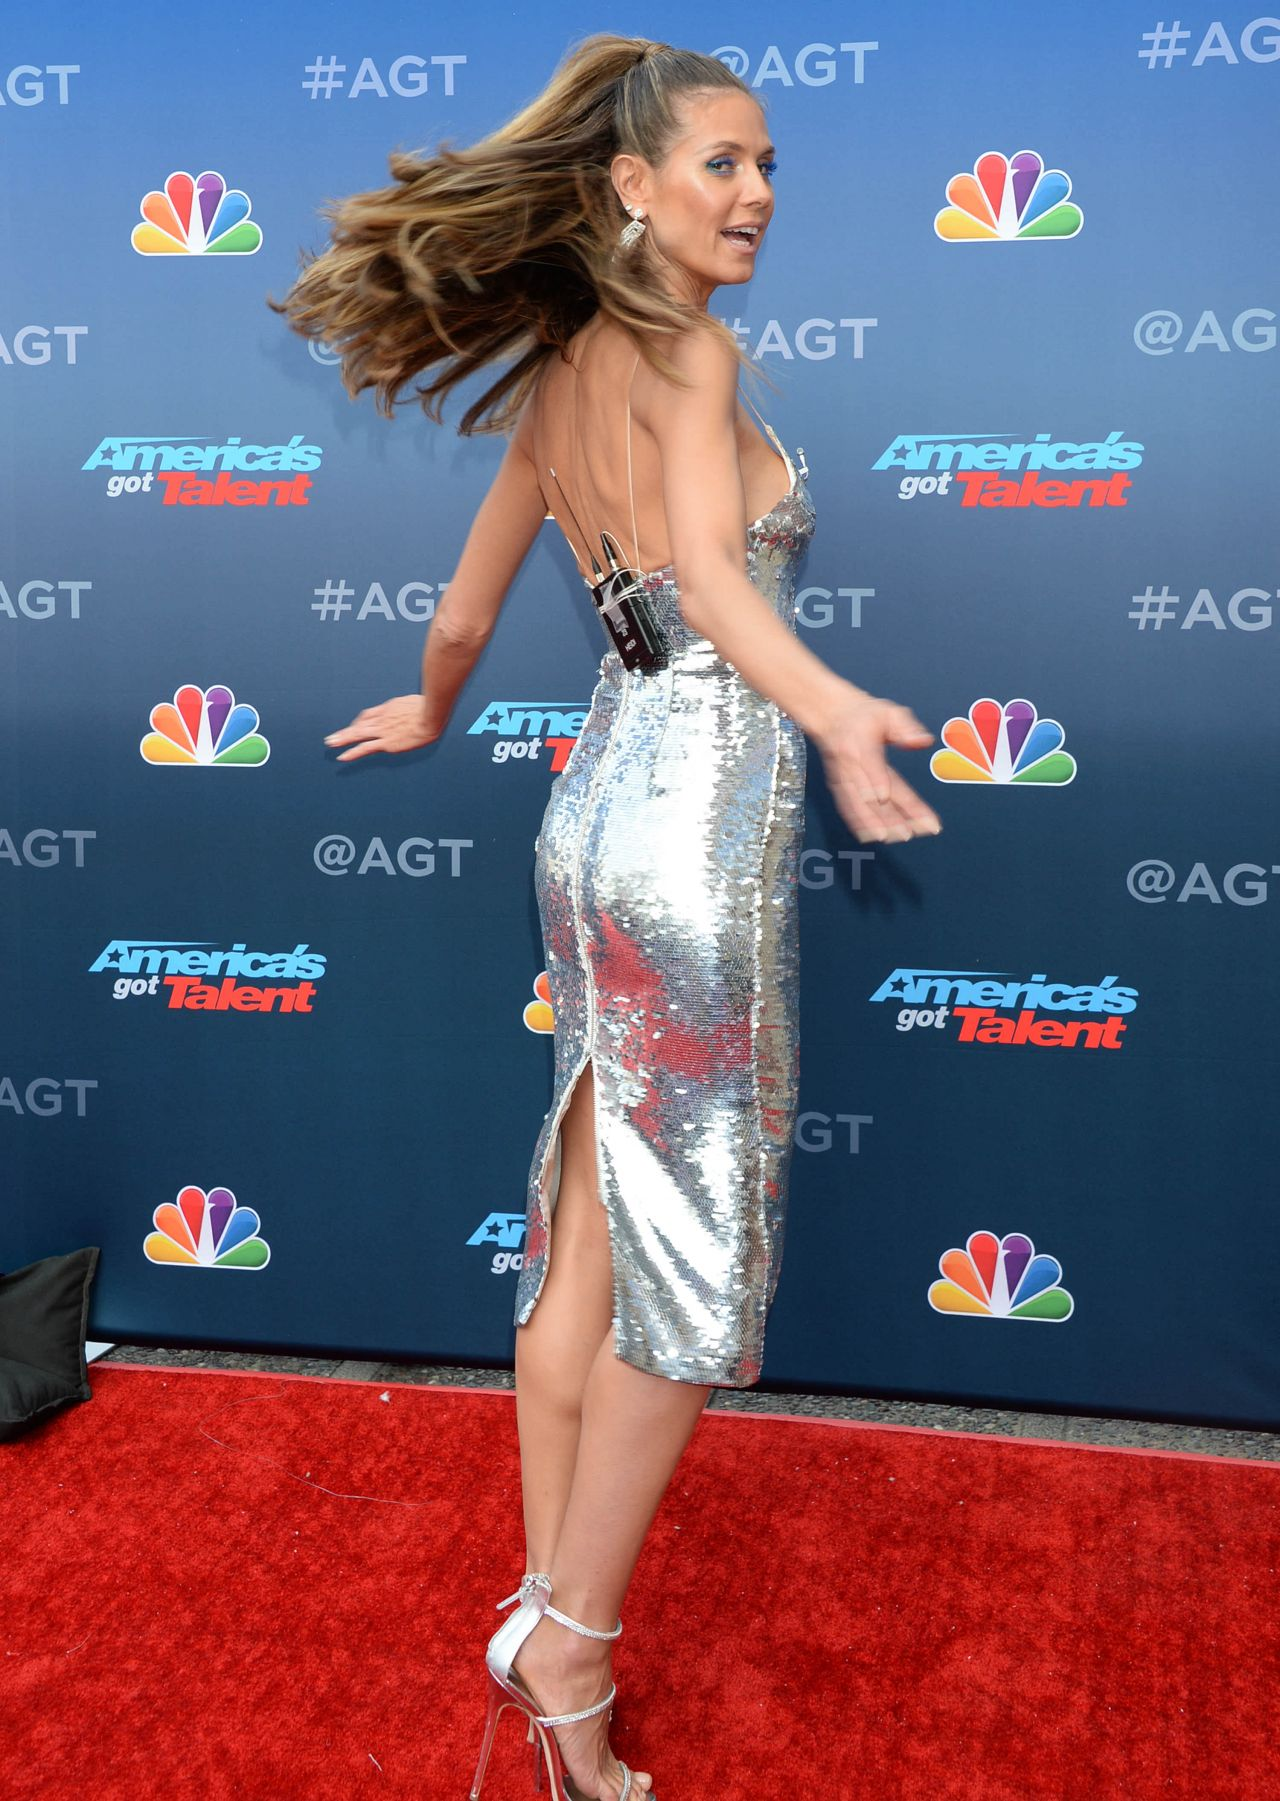 Heidi Klum Americas Got Talent Event In LA 03122018